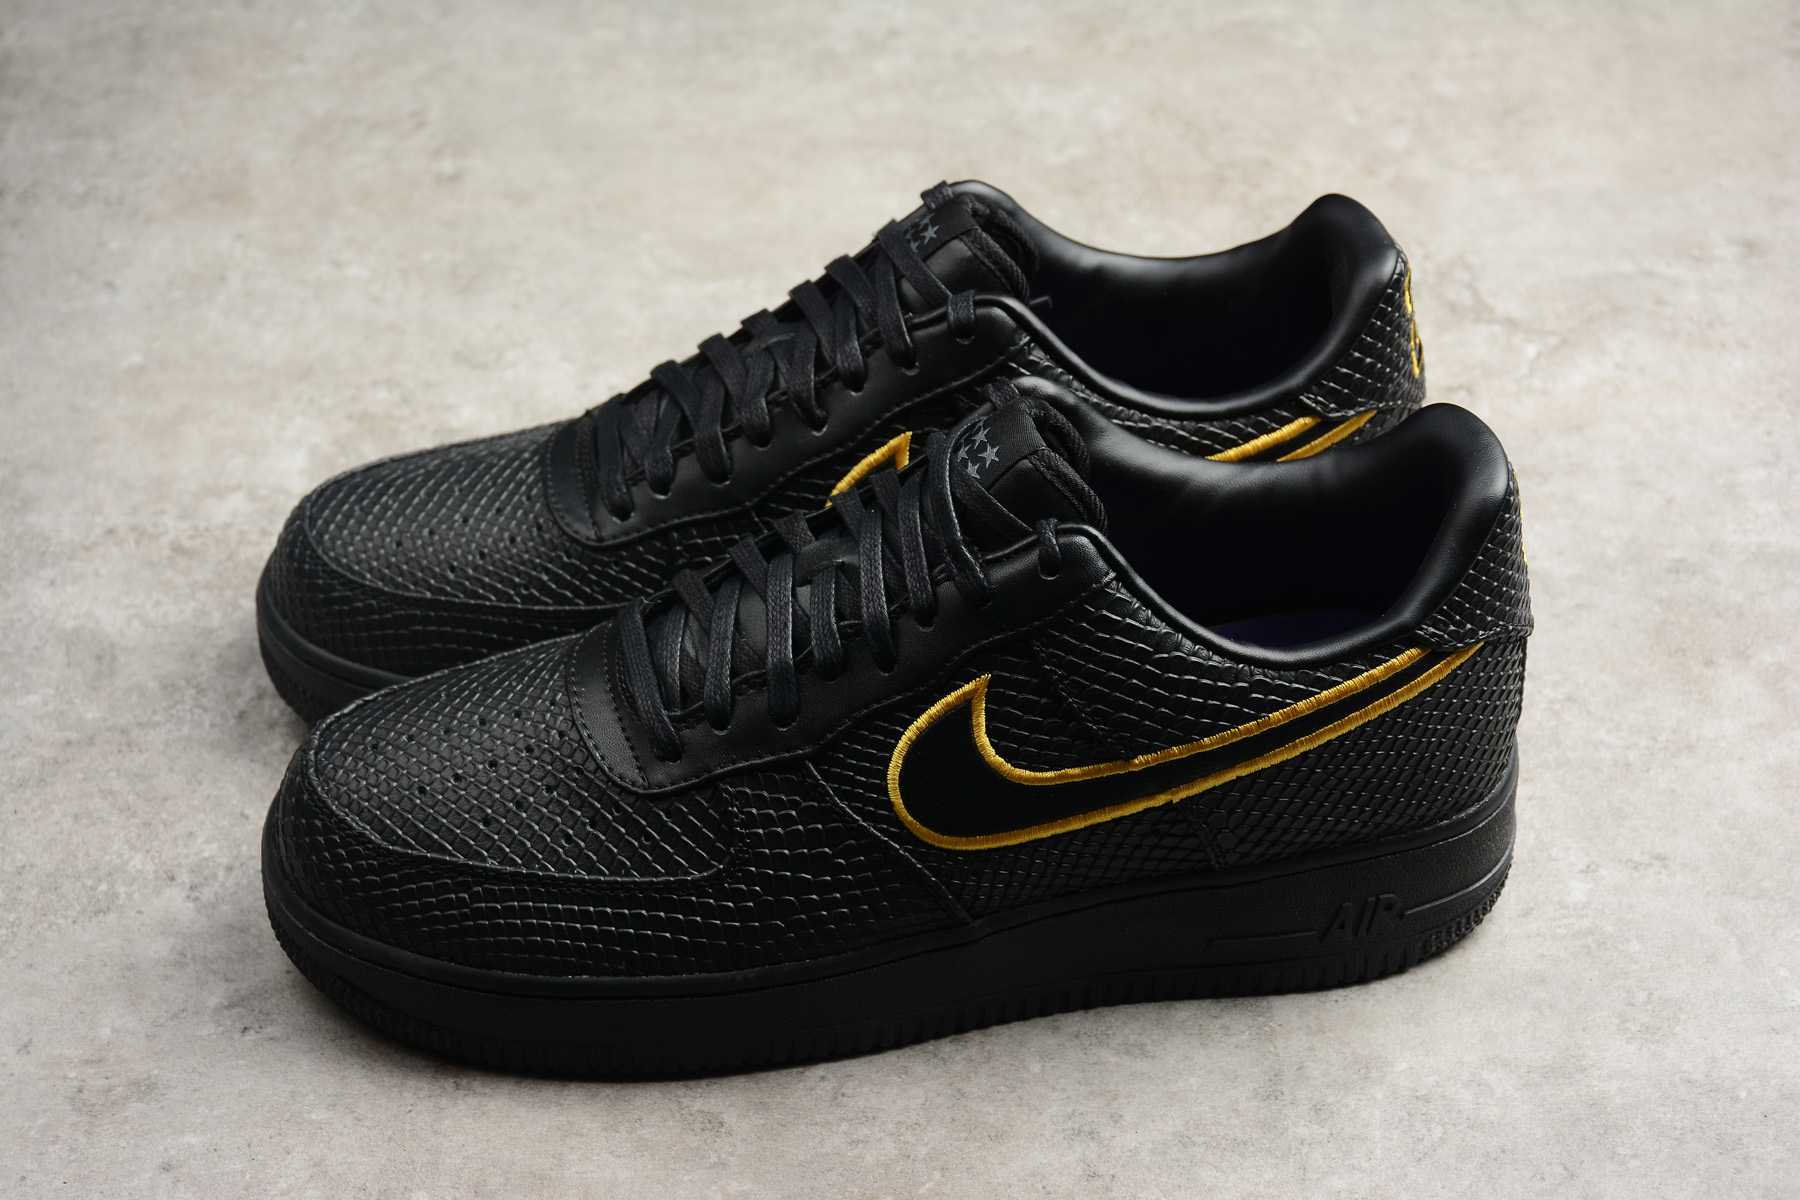 2018 new nike air force 1 low premium id black mamba kobe